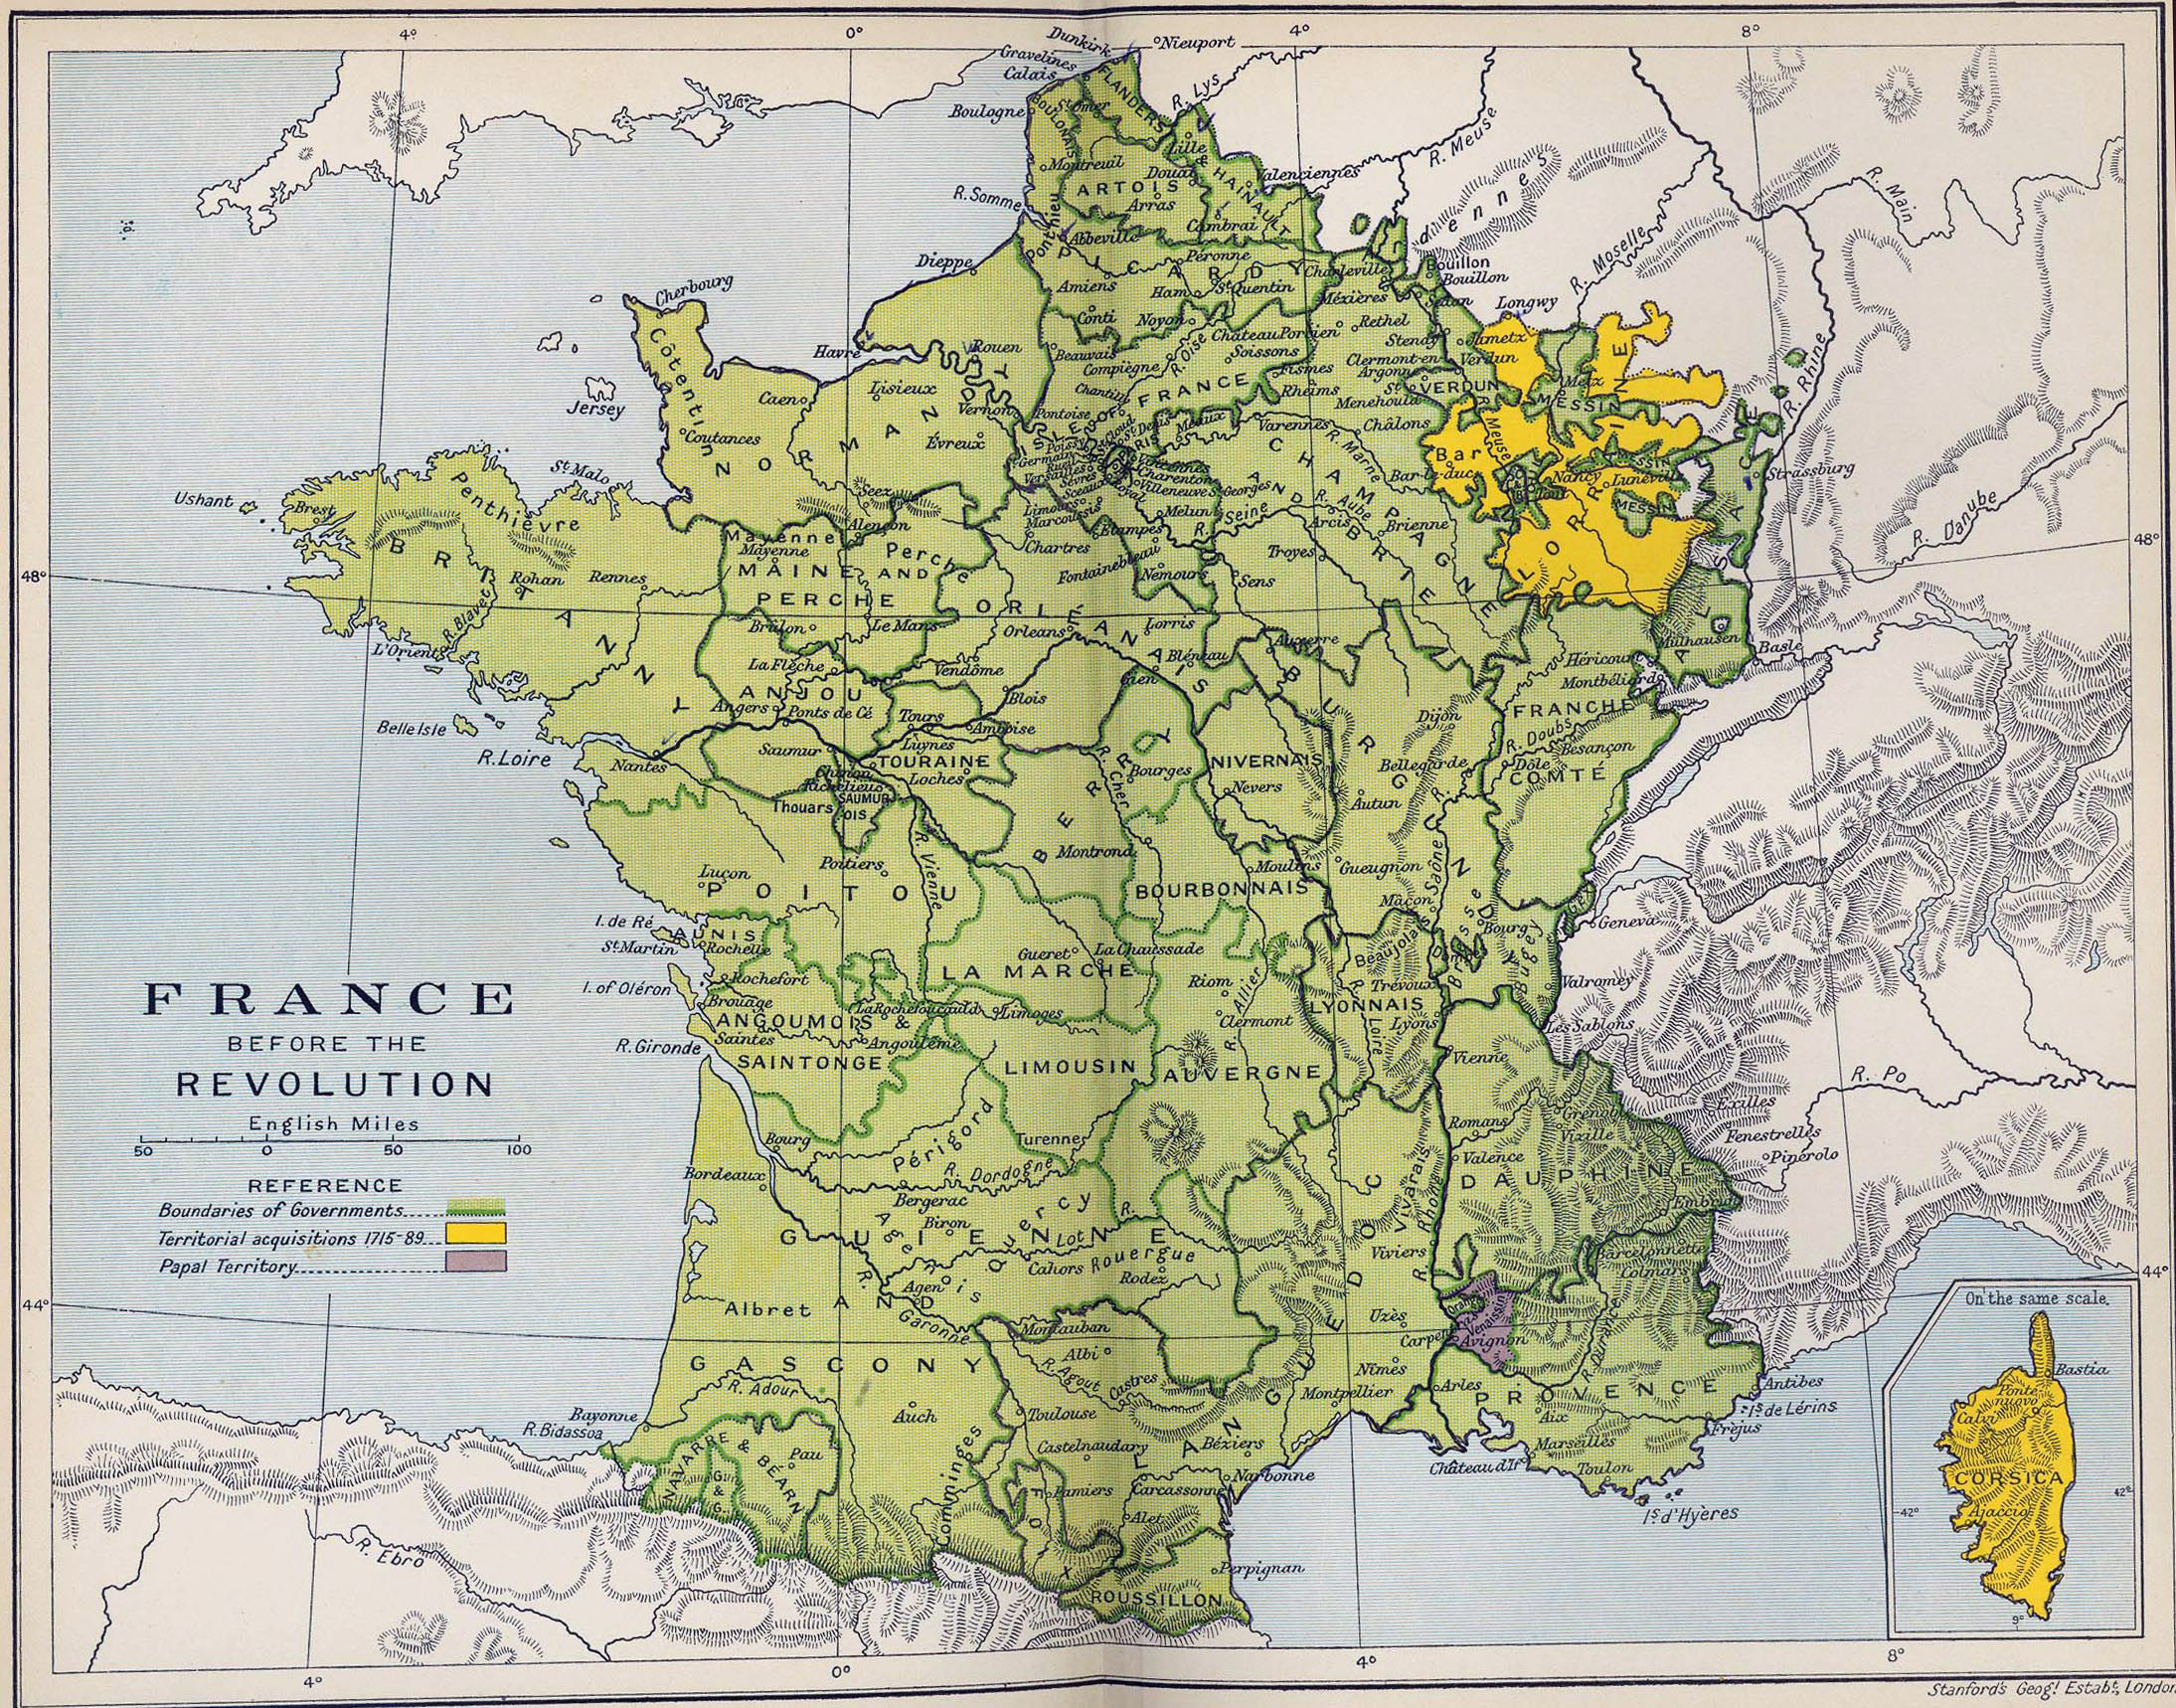 Old Map Of France.Large Detailed Old Map Of France Before The Revolution 1788